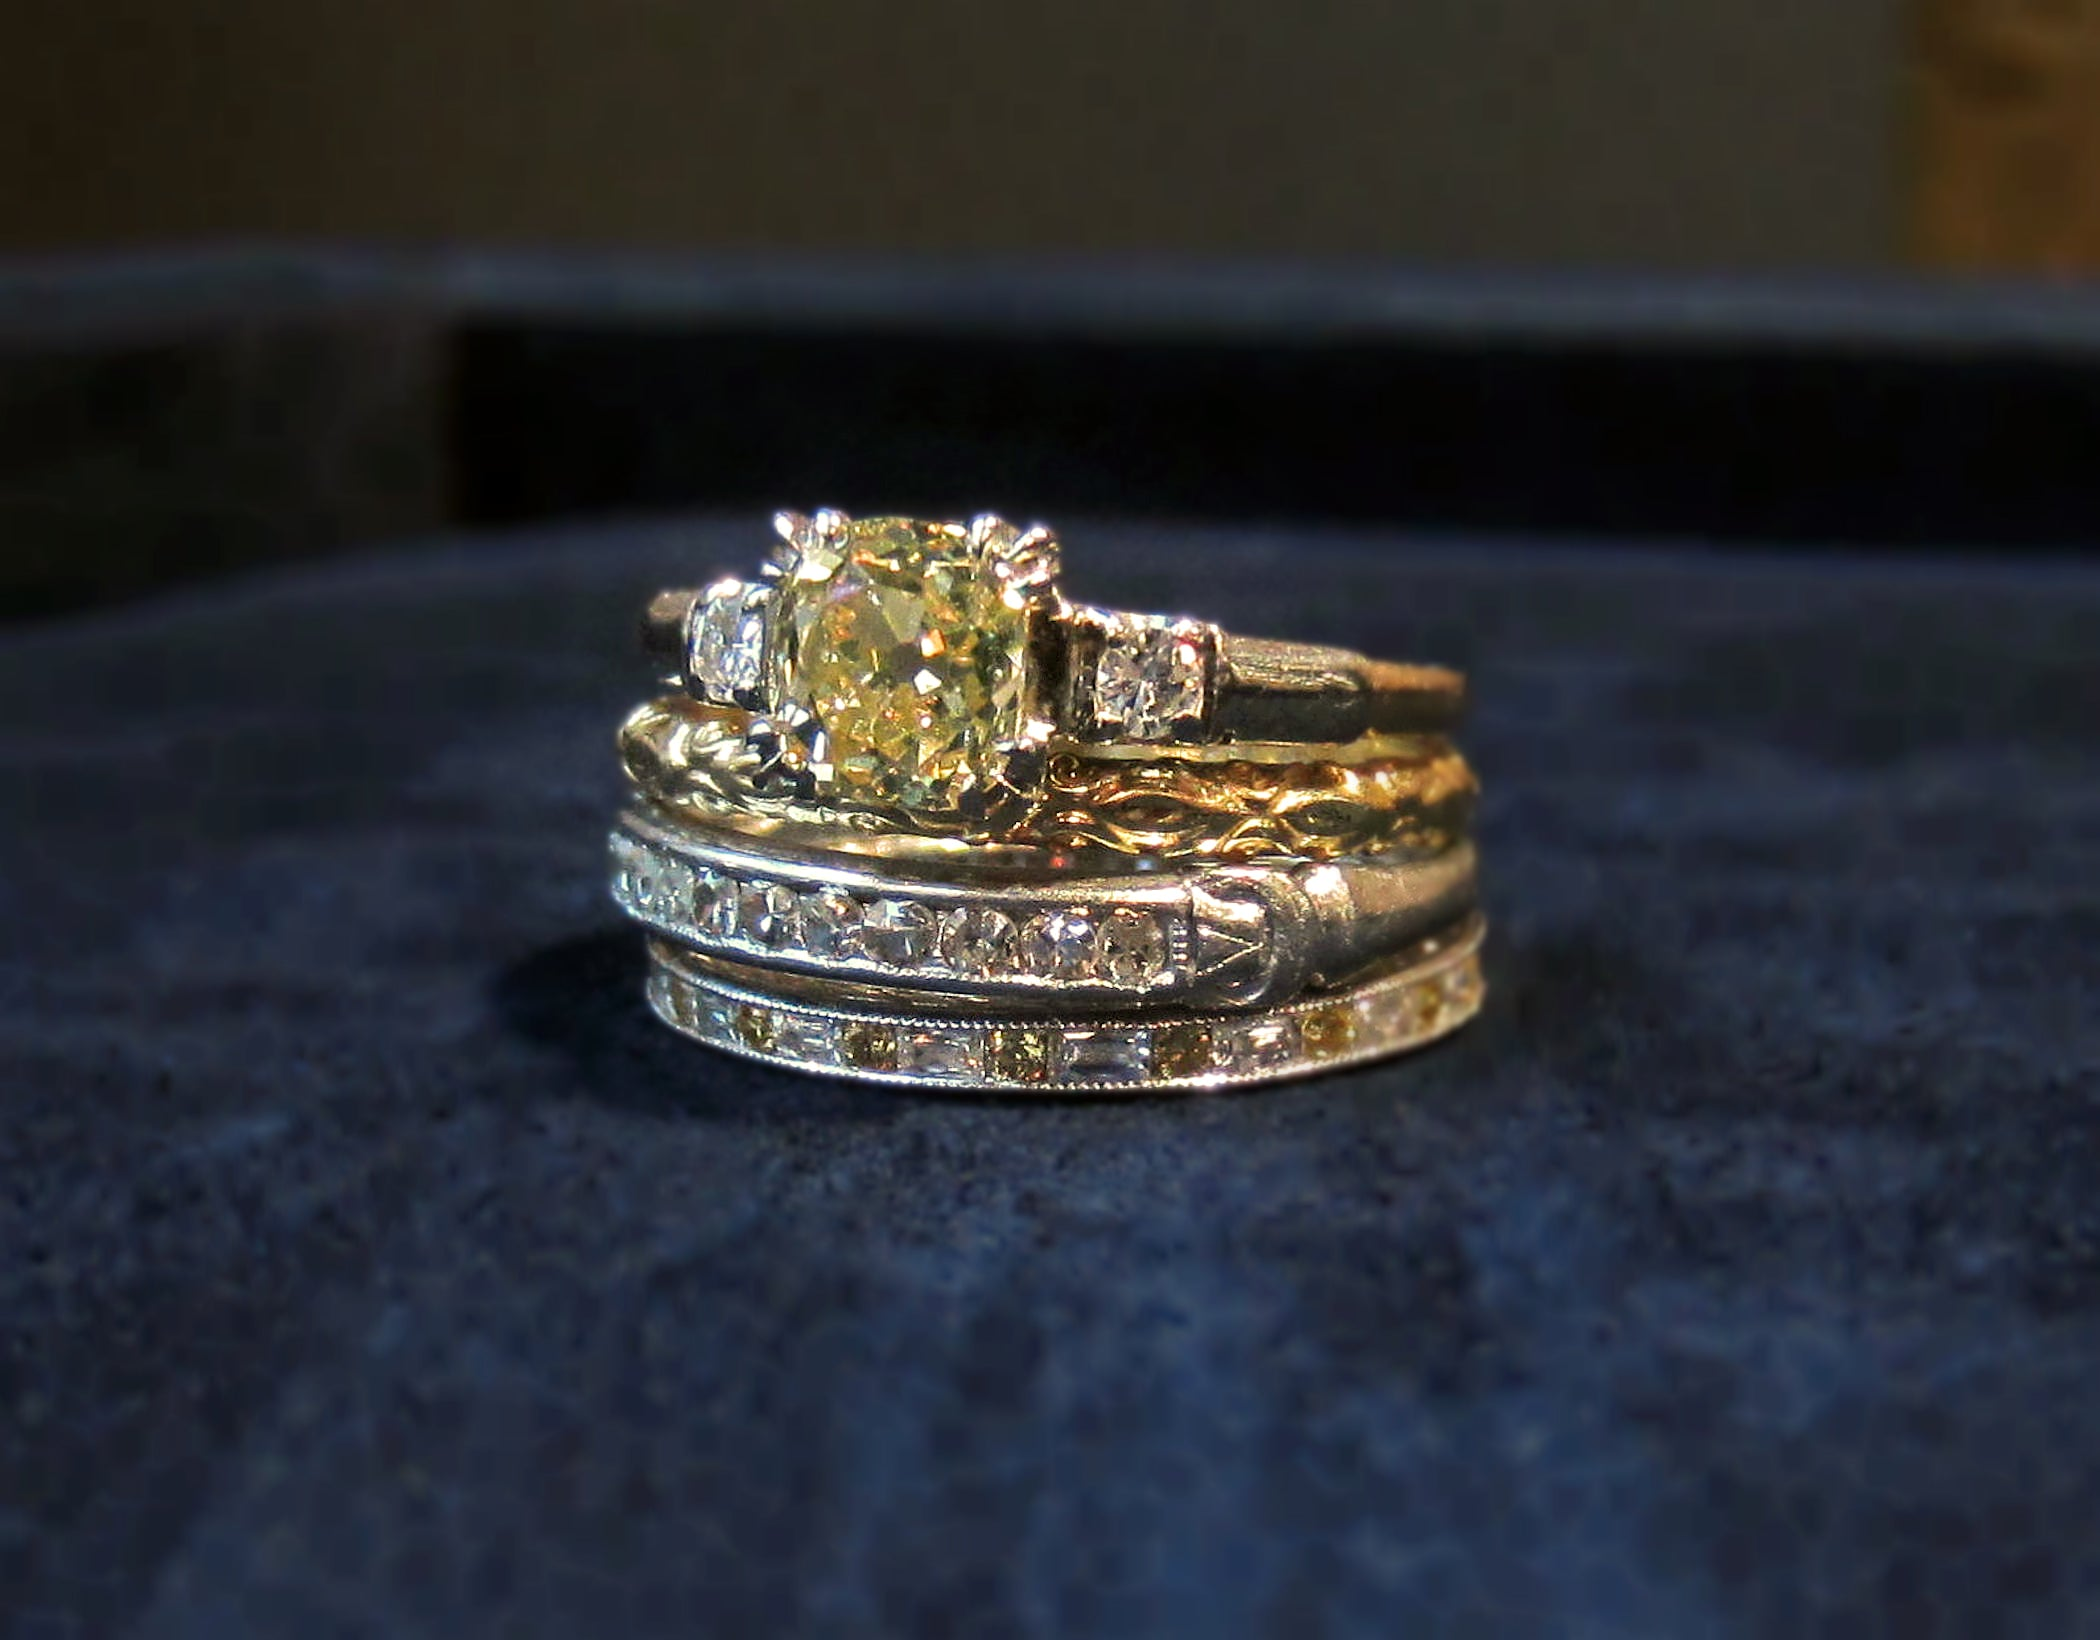 Vintage fancy yellow diamond engagement ring and wedding bands from Doyle & Doyle